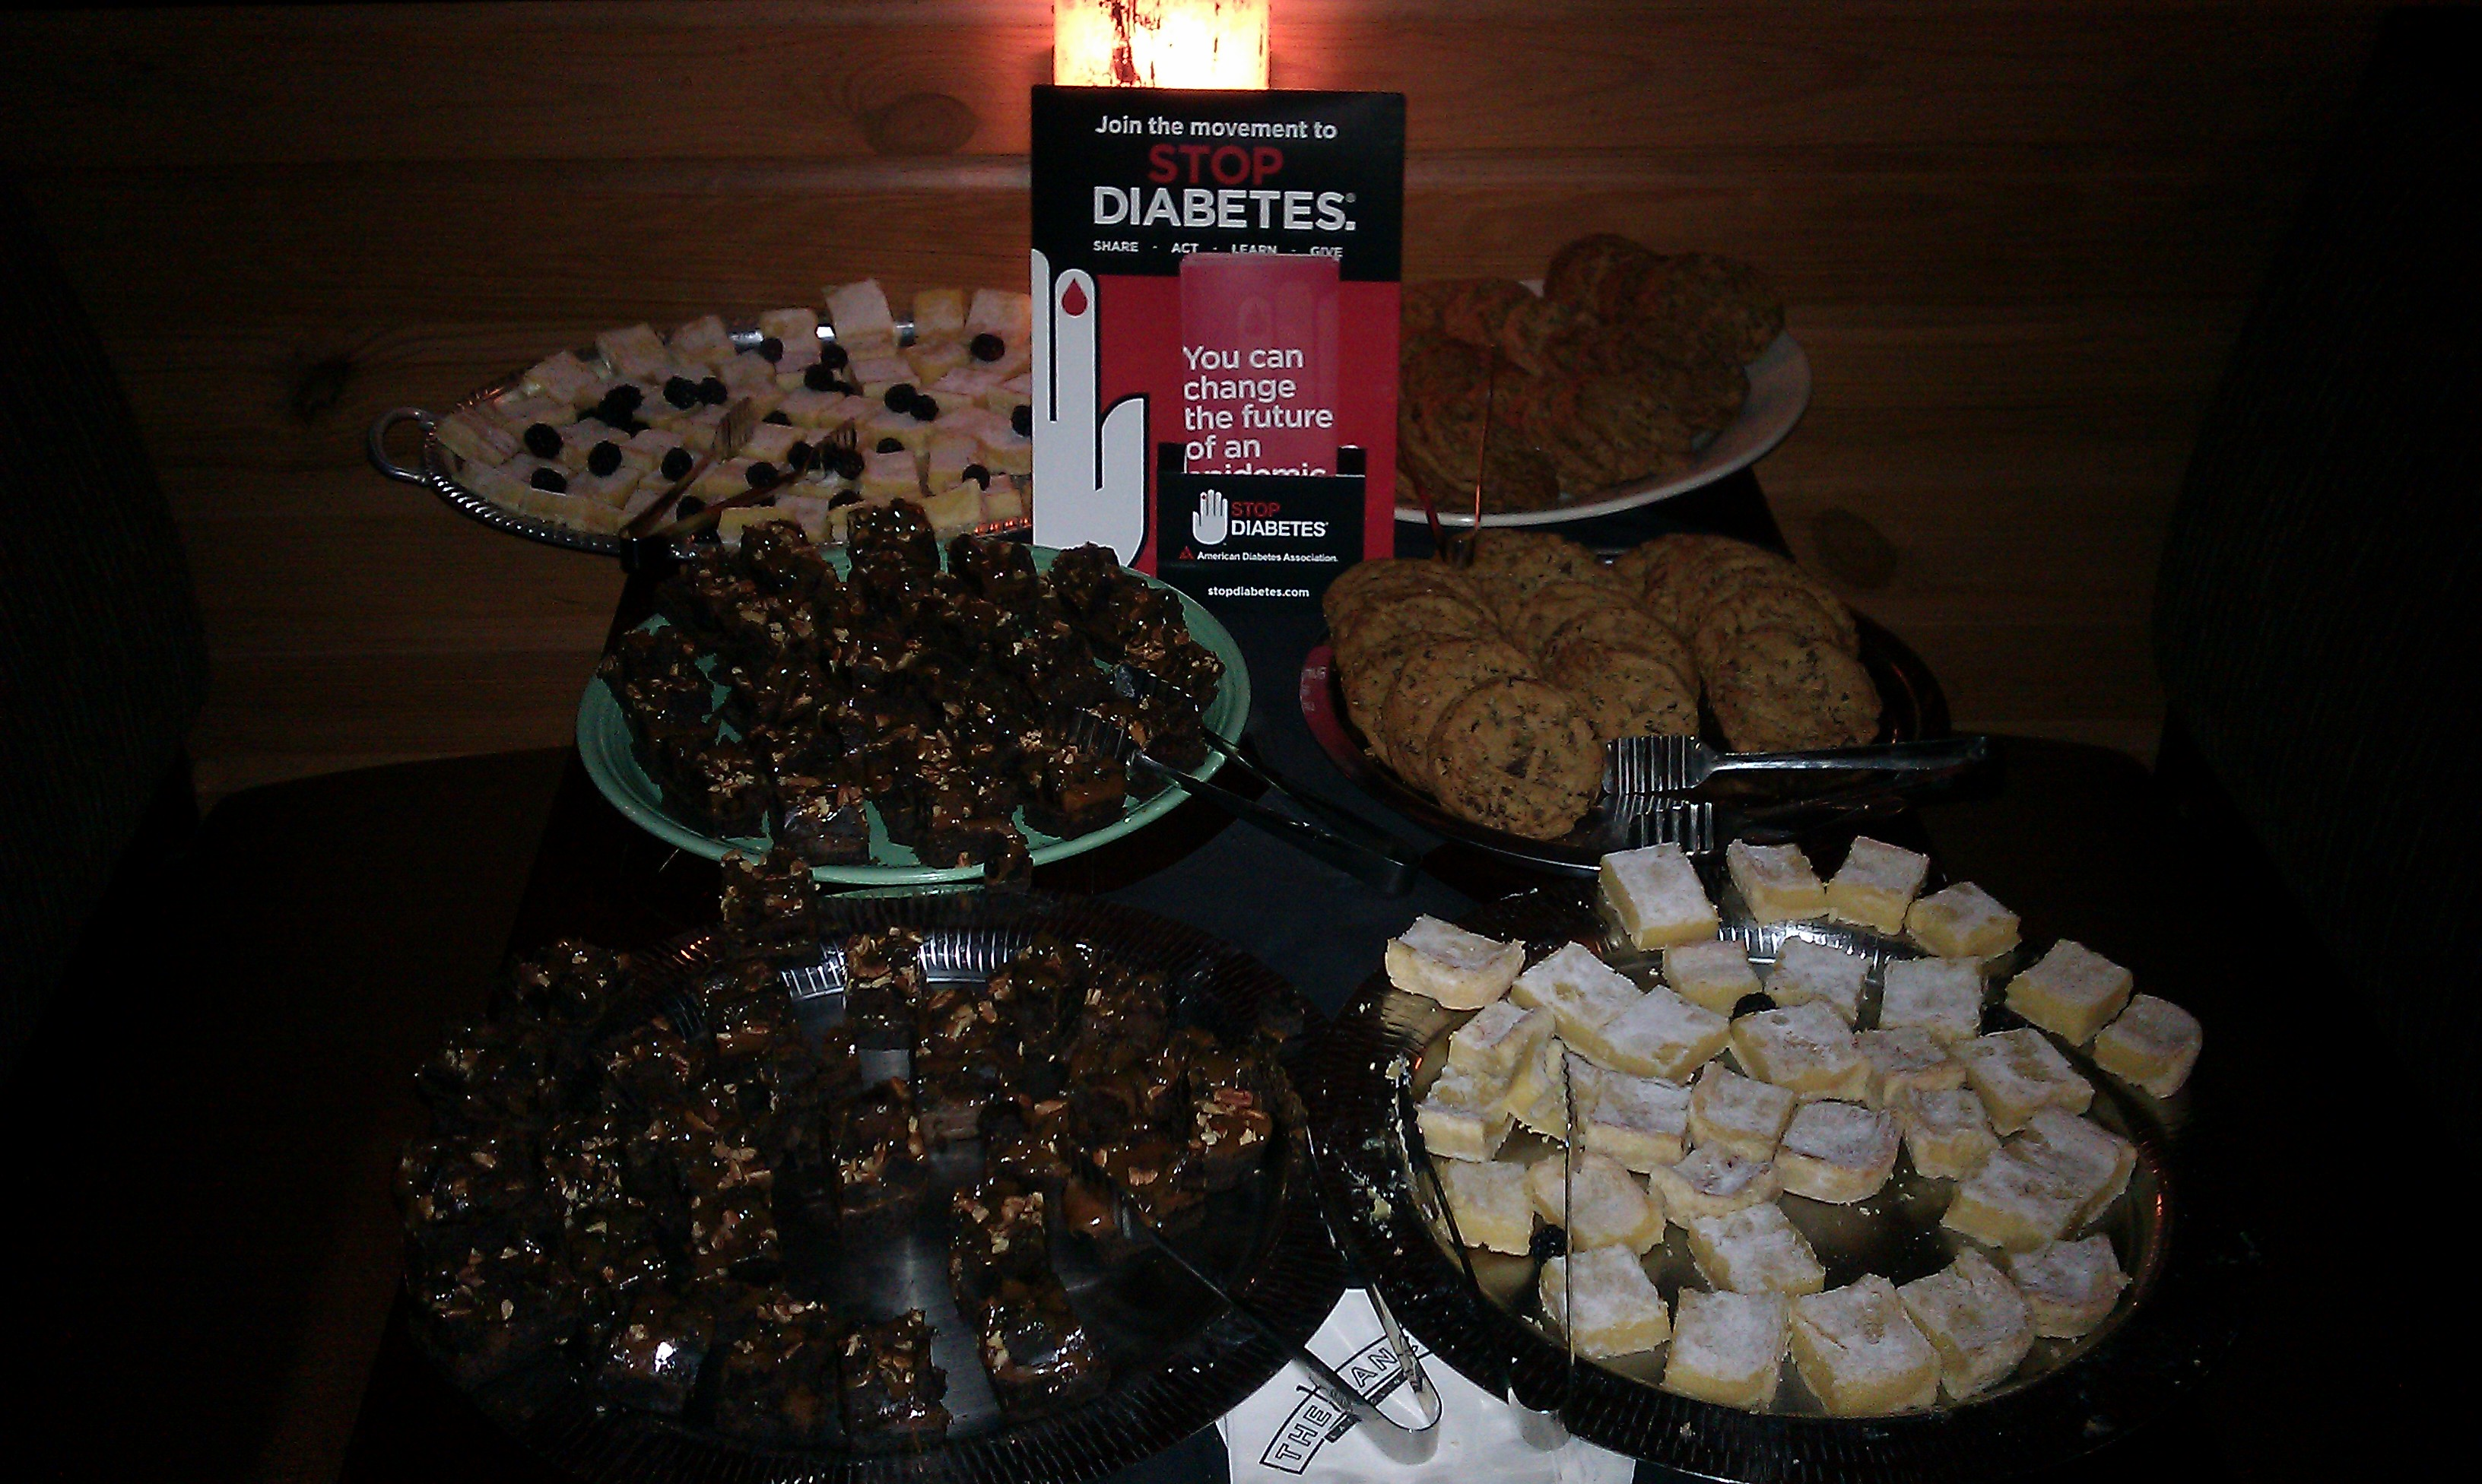 American Diabetes Association serves cookies, brownies and more!